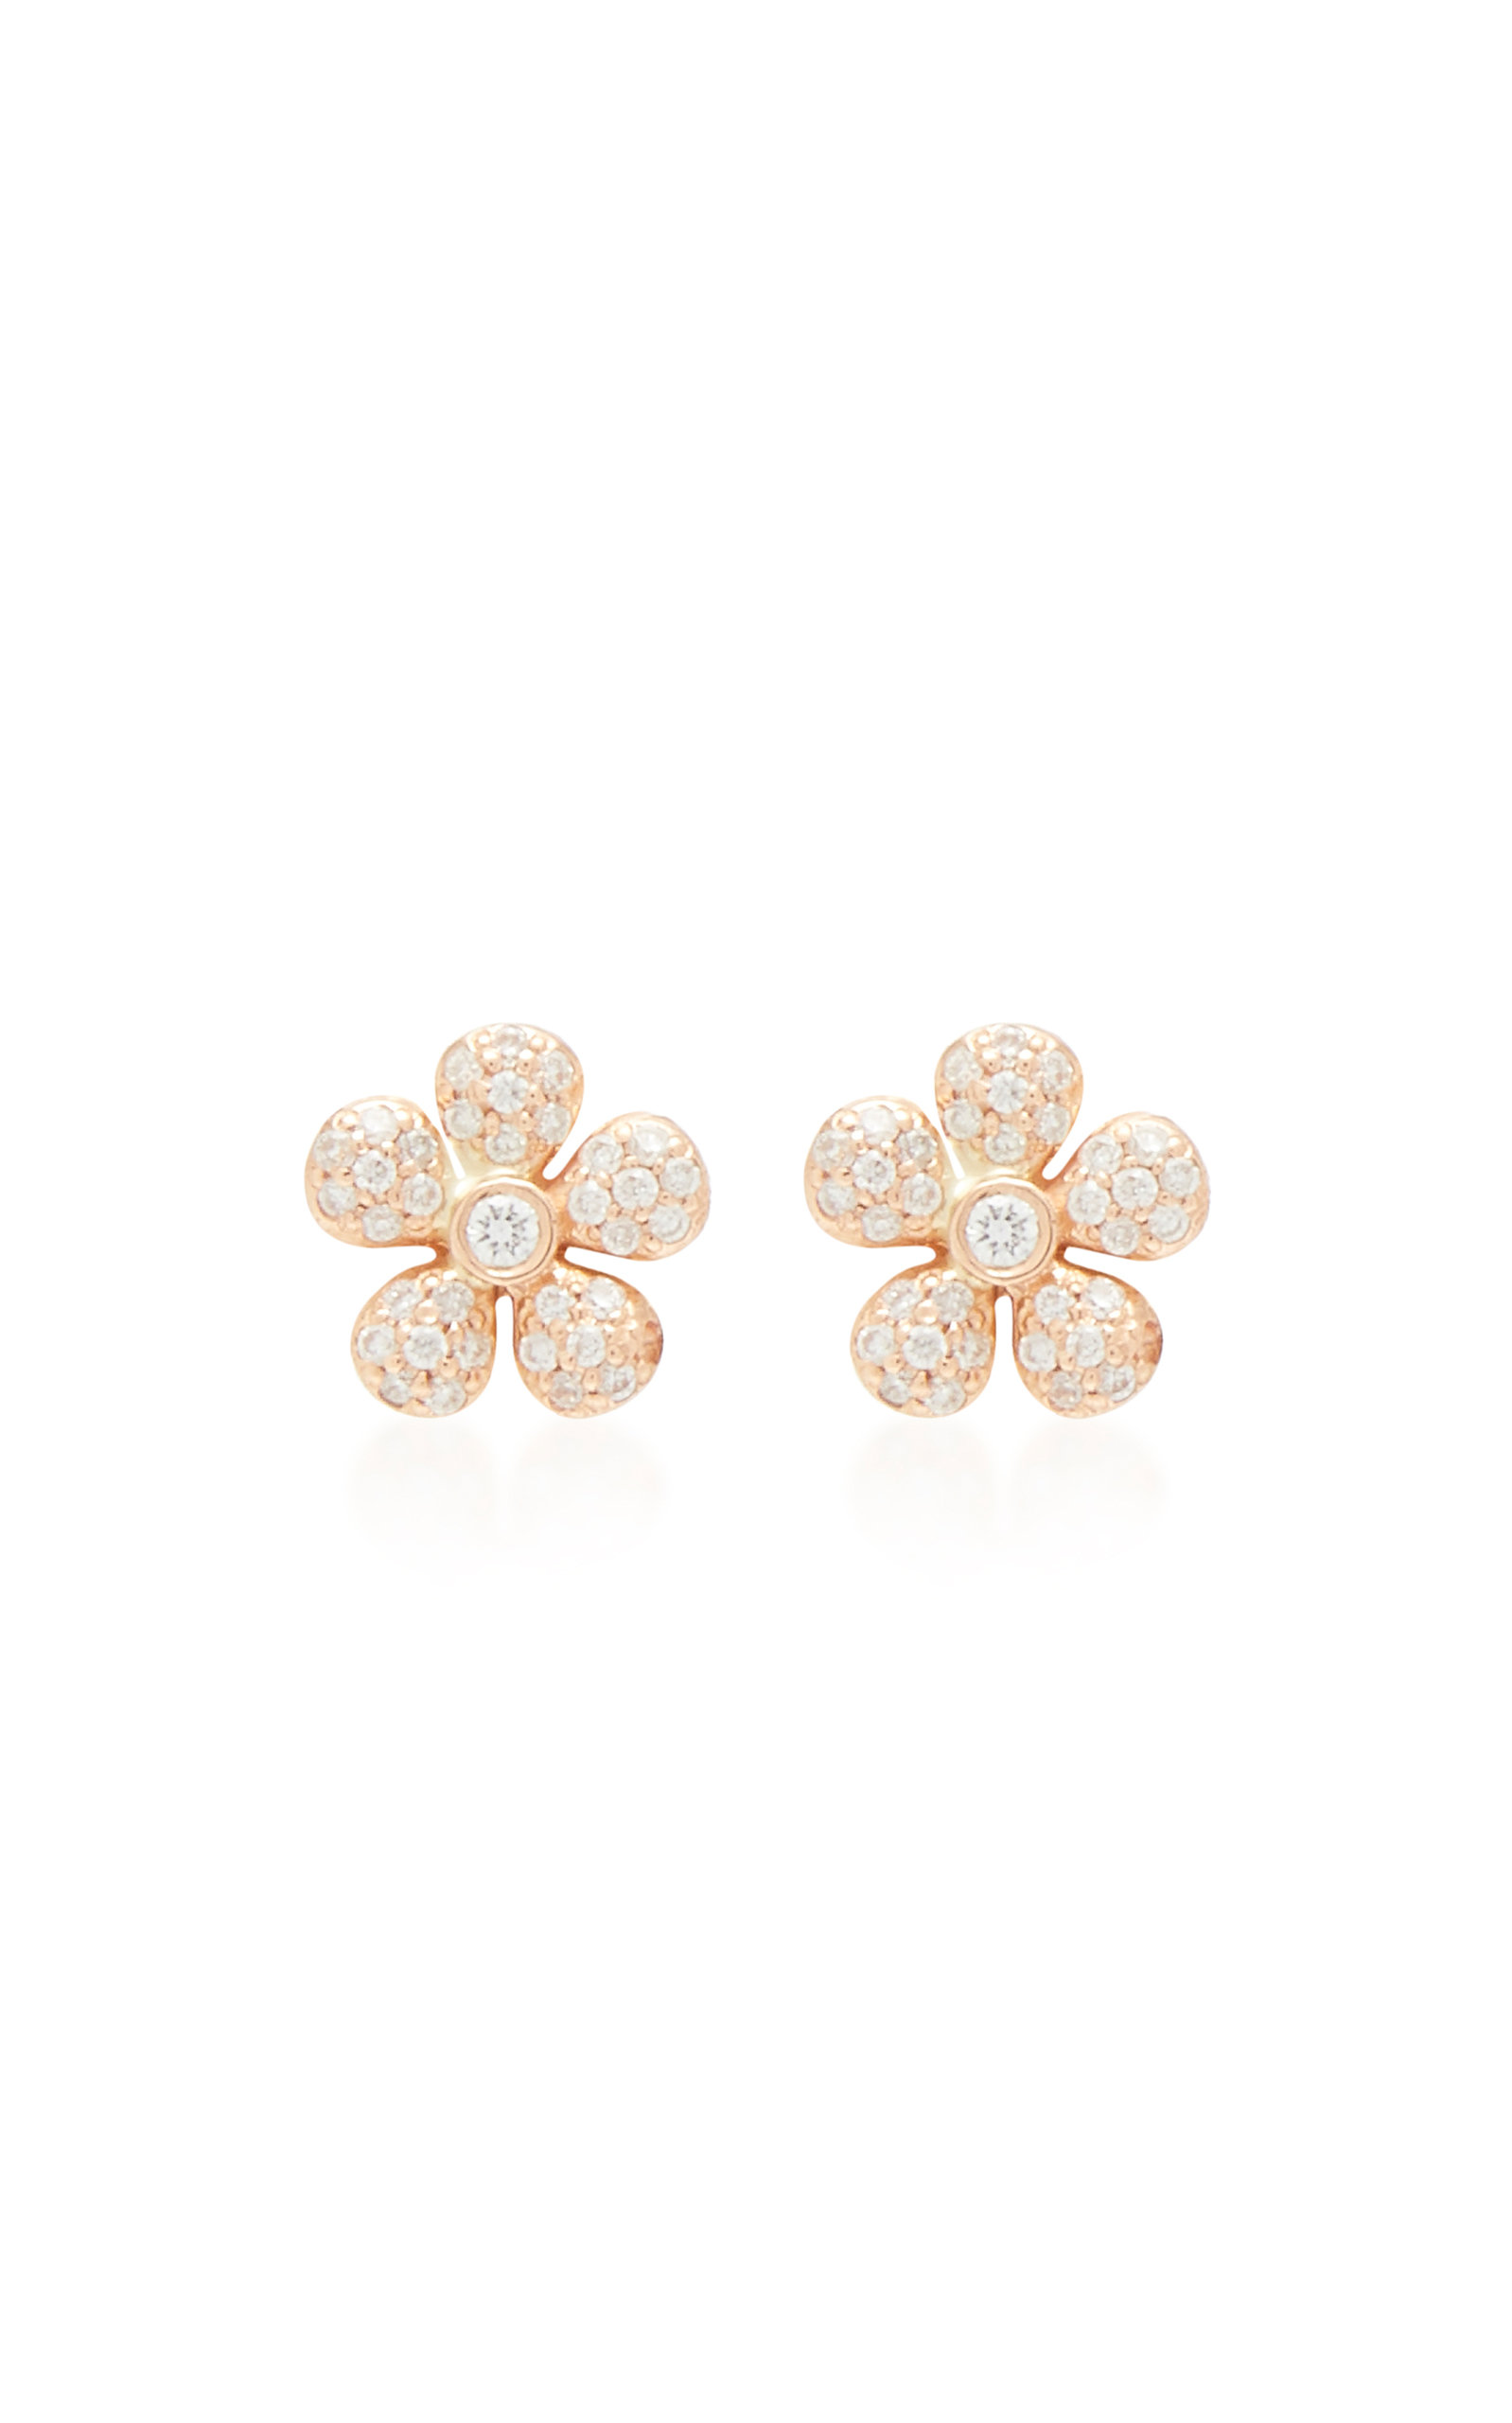 COLETTE JEWELRY 18K Gold And Diamond Earrings in Pink